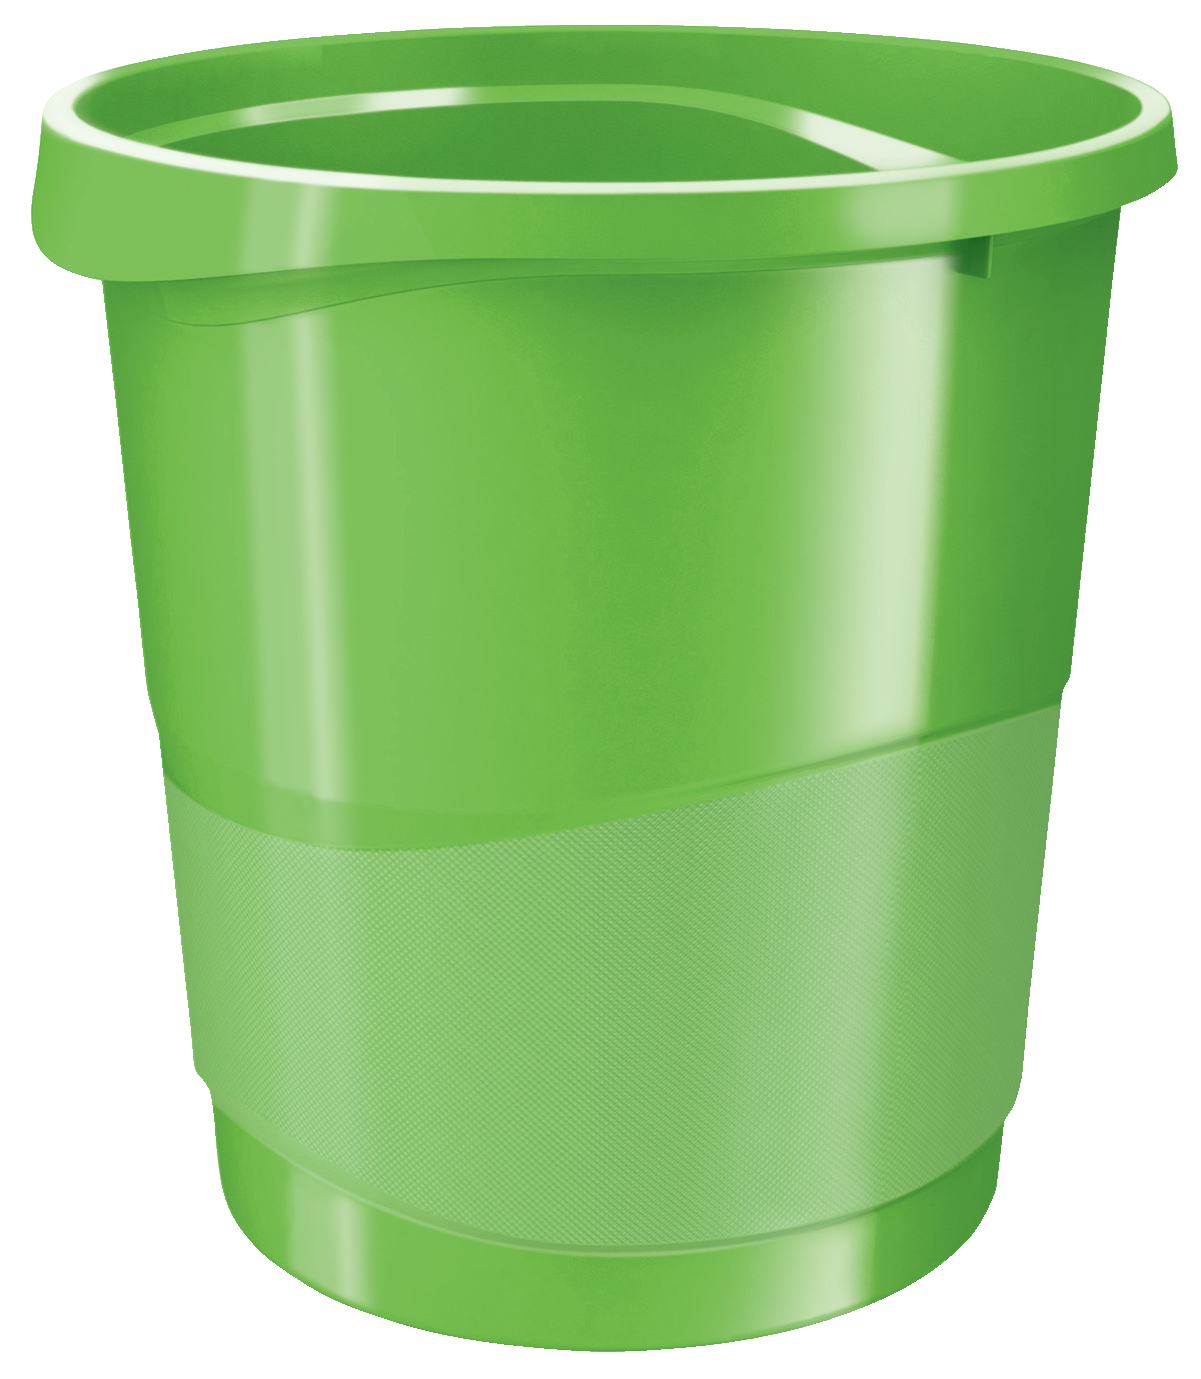 Rexel Choices Waste Bin Green